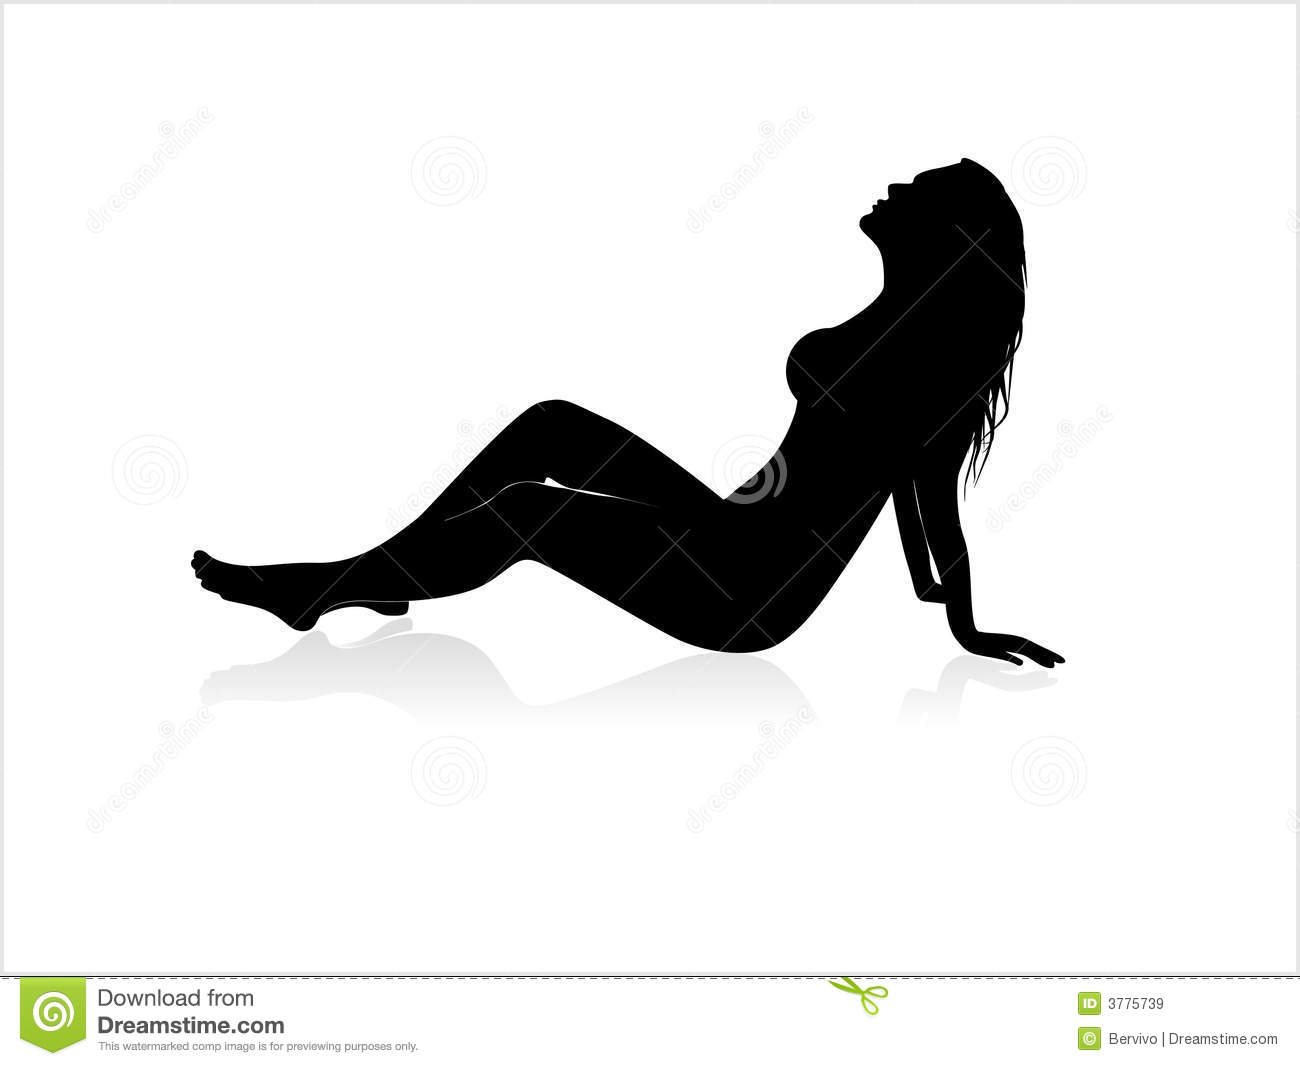 Sexy lady silhouette images recommend